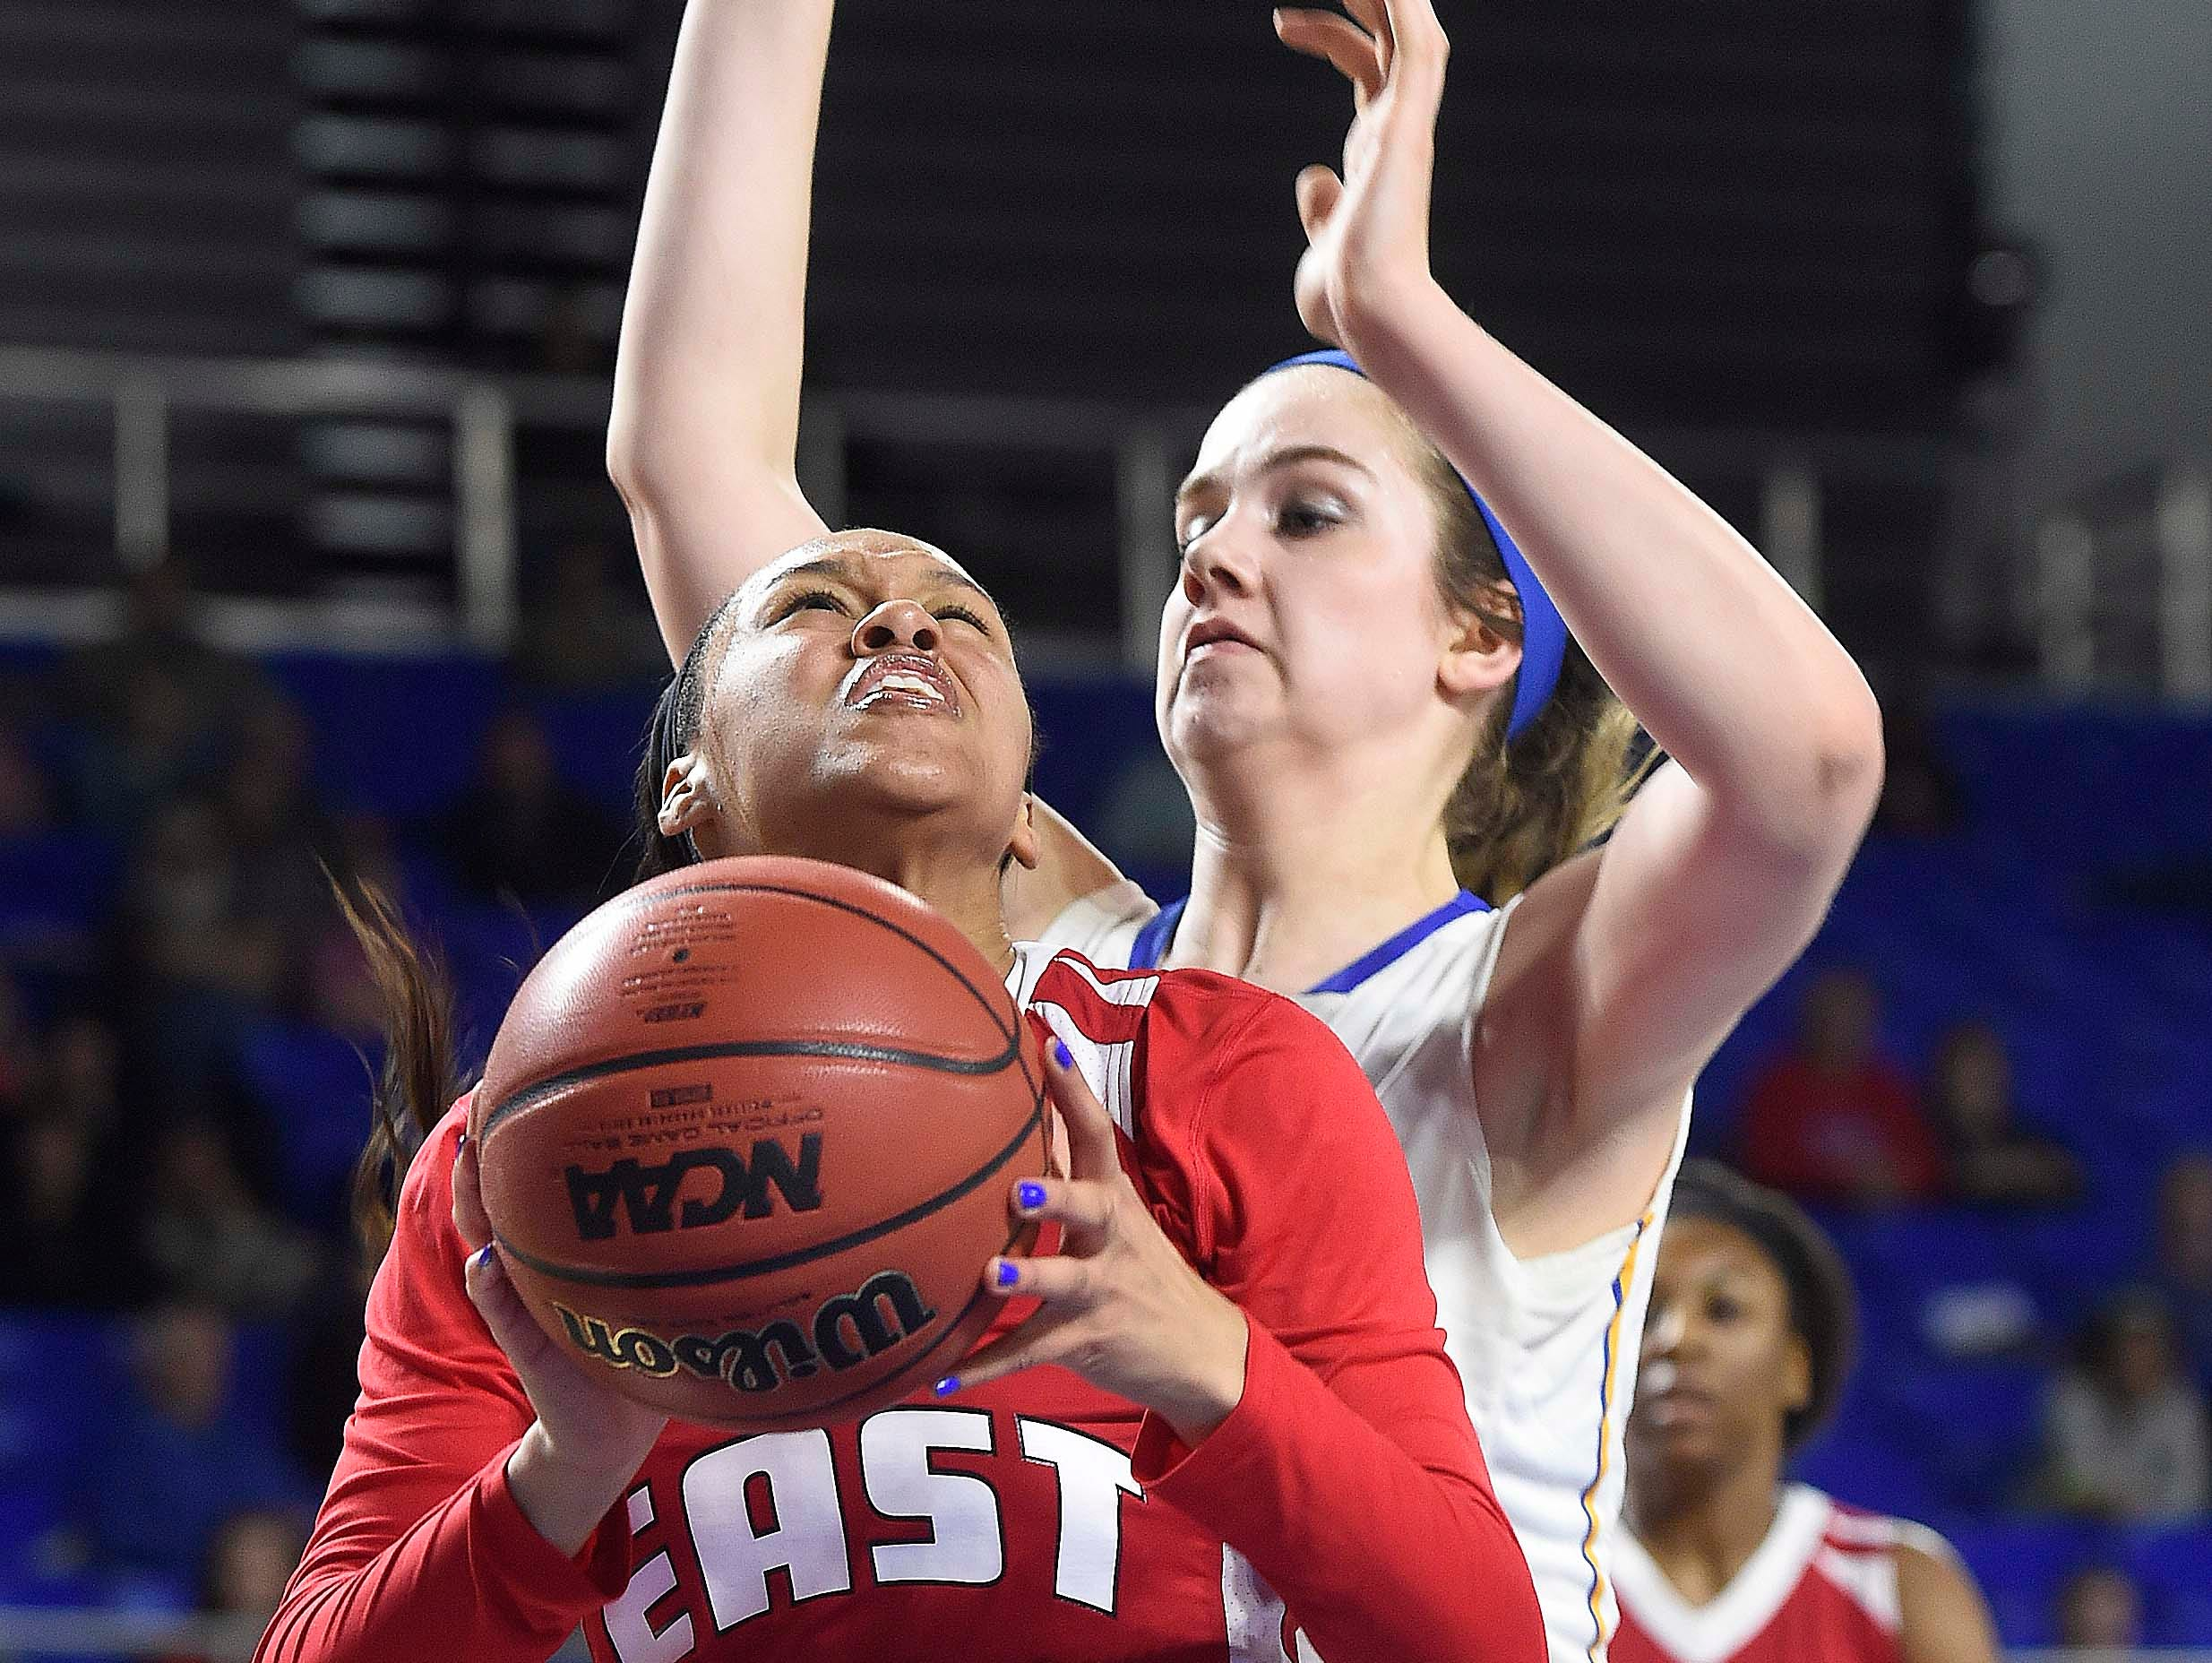 East's Kaia Upton (14) works the paint as her defended Westview's Lydia Pritchett (35) as Westview High School leads 17-13 East Nashville at the half in the Division I Class AA Girl's basketball semi-finals at the Murphy Center on MTSU's campus March 11, 2016 in Murfreesboro, Tenn.